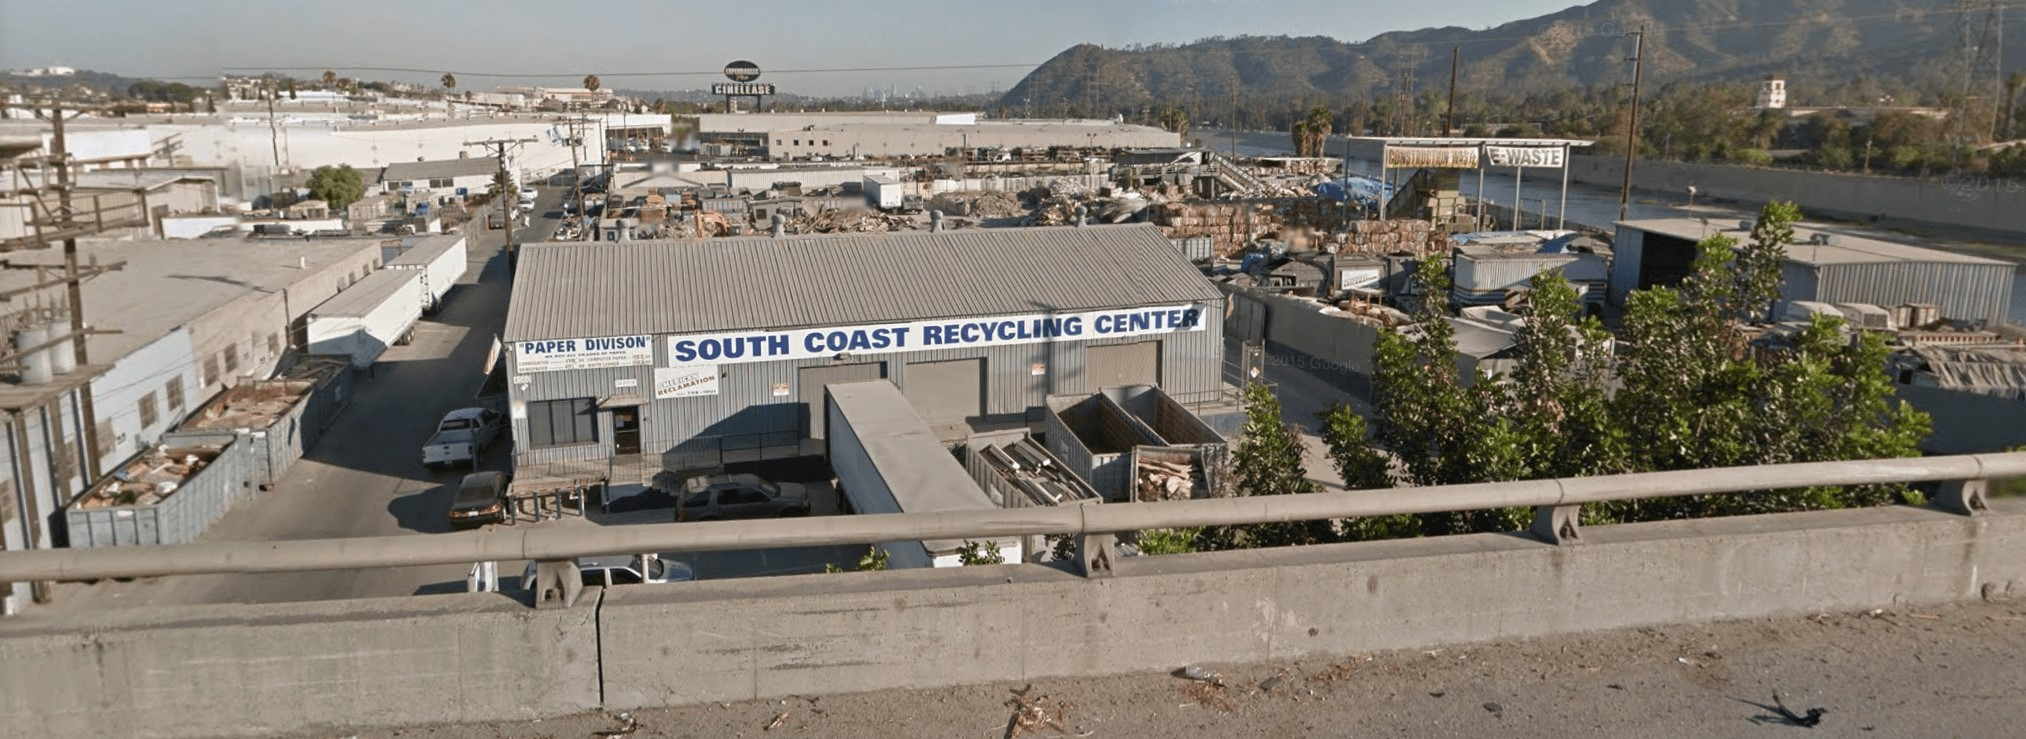 Los Angeles recycling services